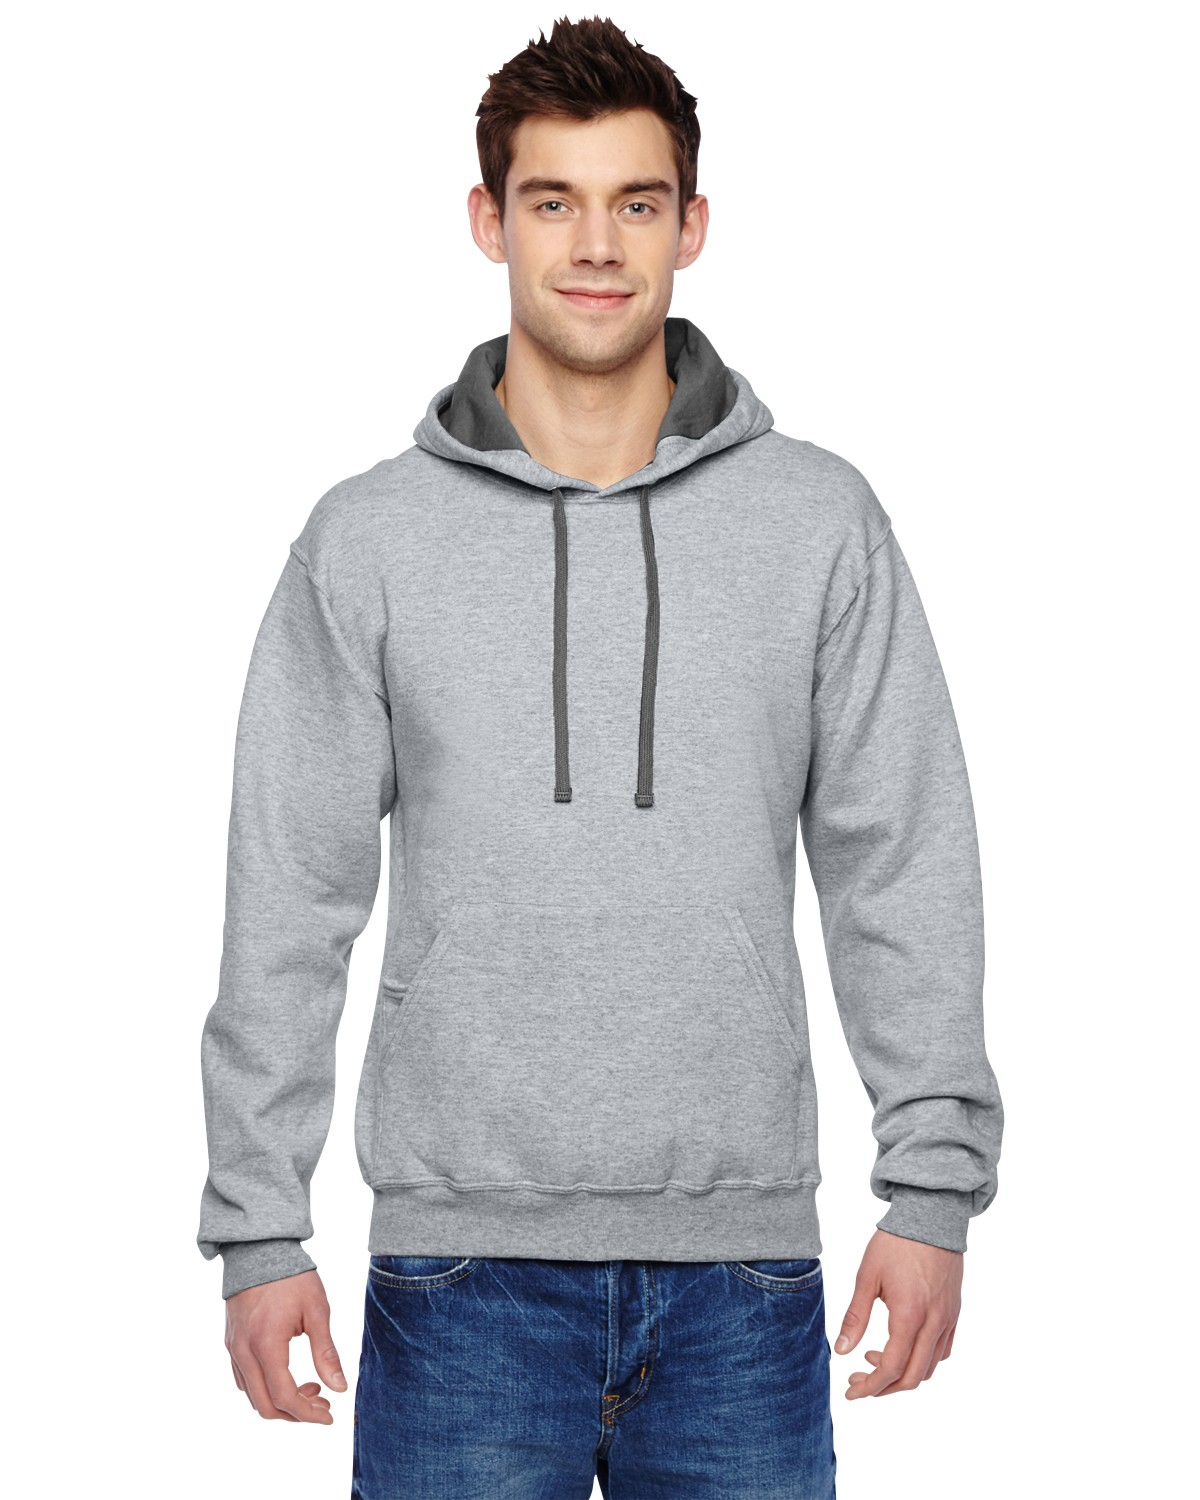 SF76R Fruit of the Loom ATHLETIC HEATHER